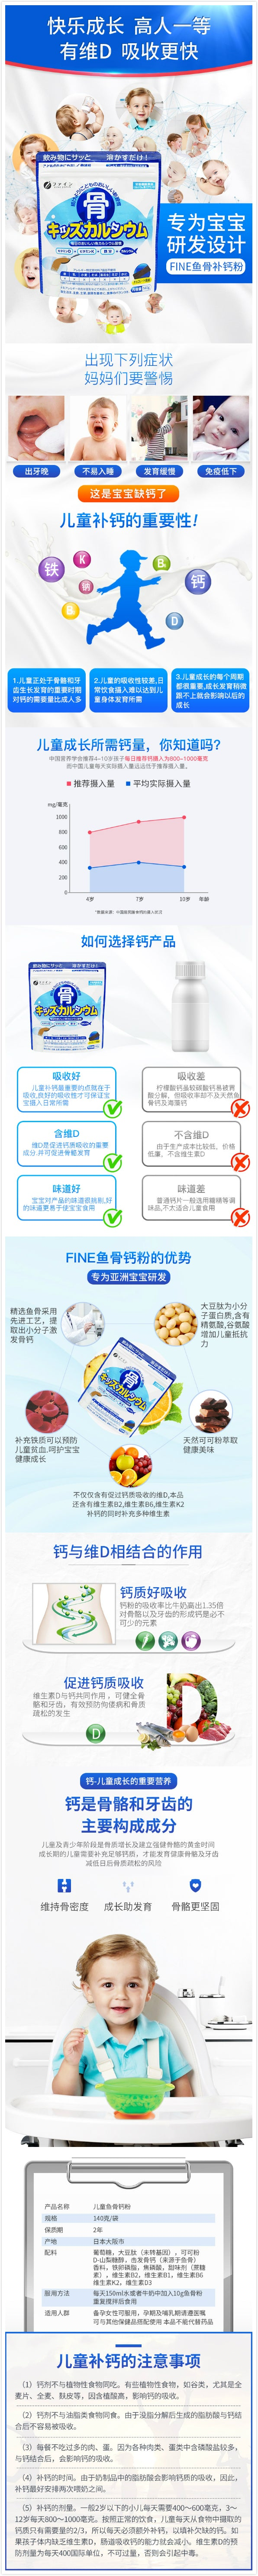 FINE Bone Calcium for Kids Landing Page